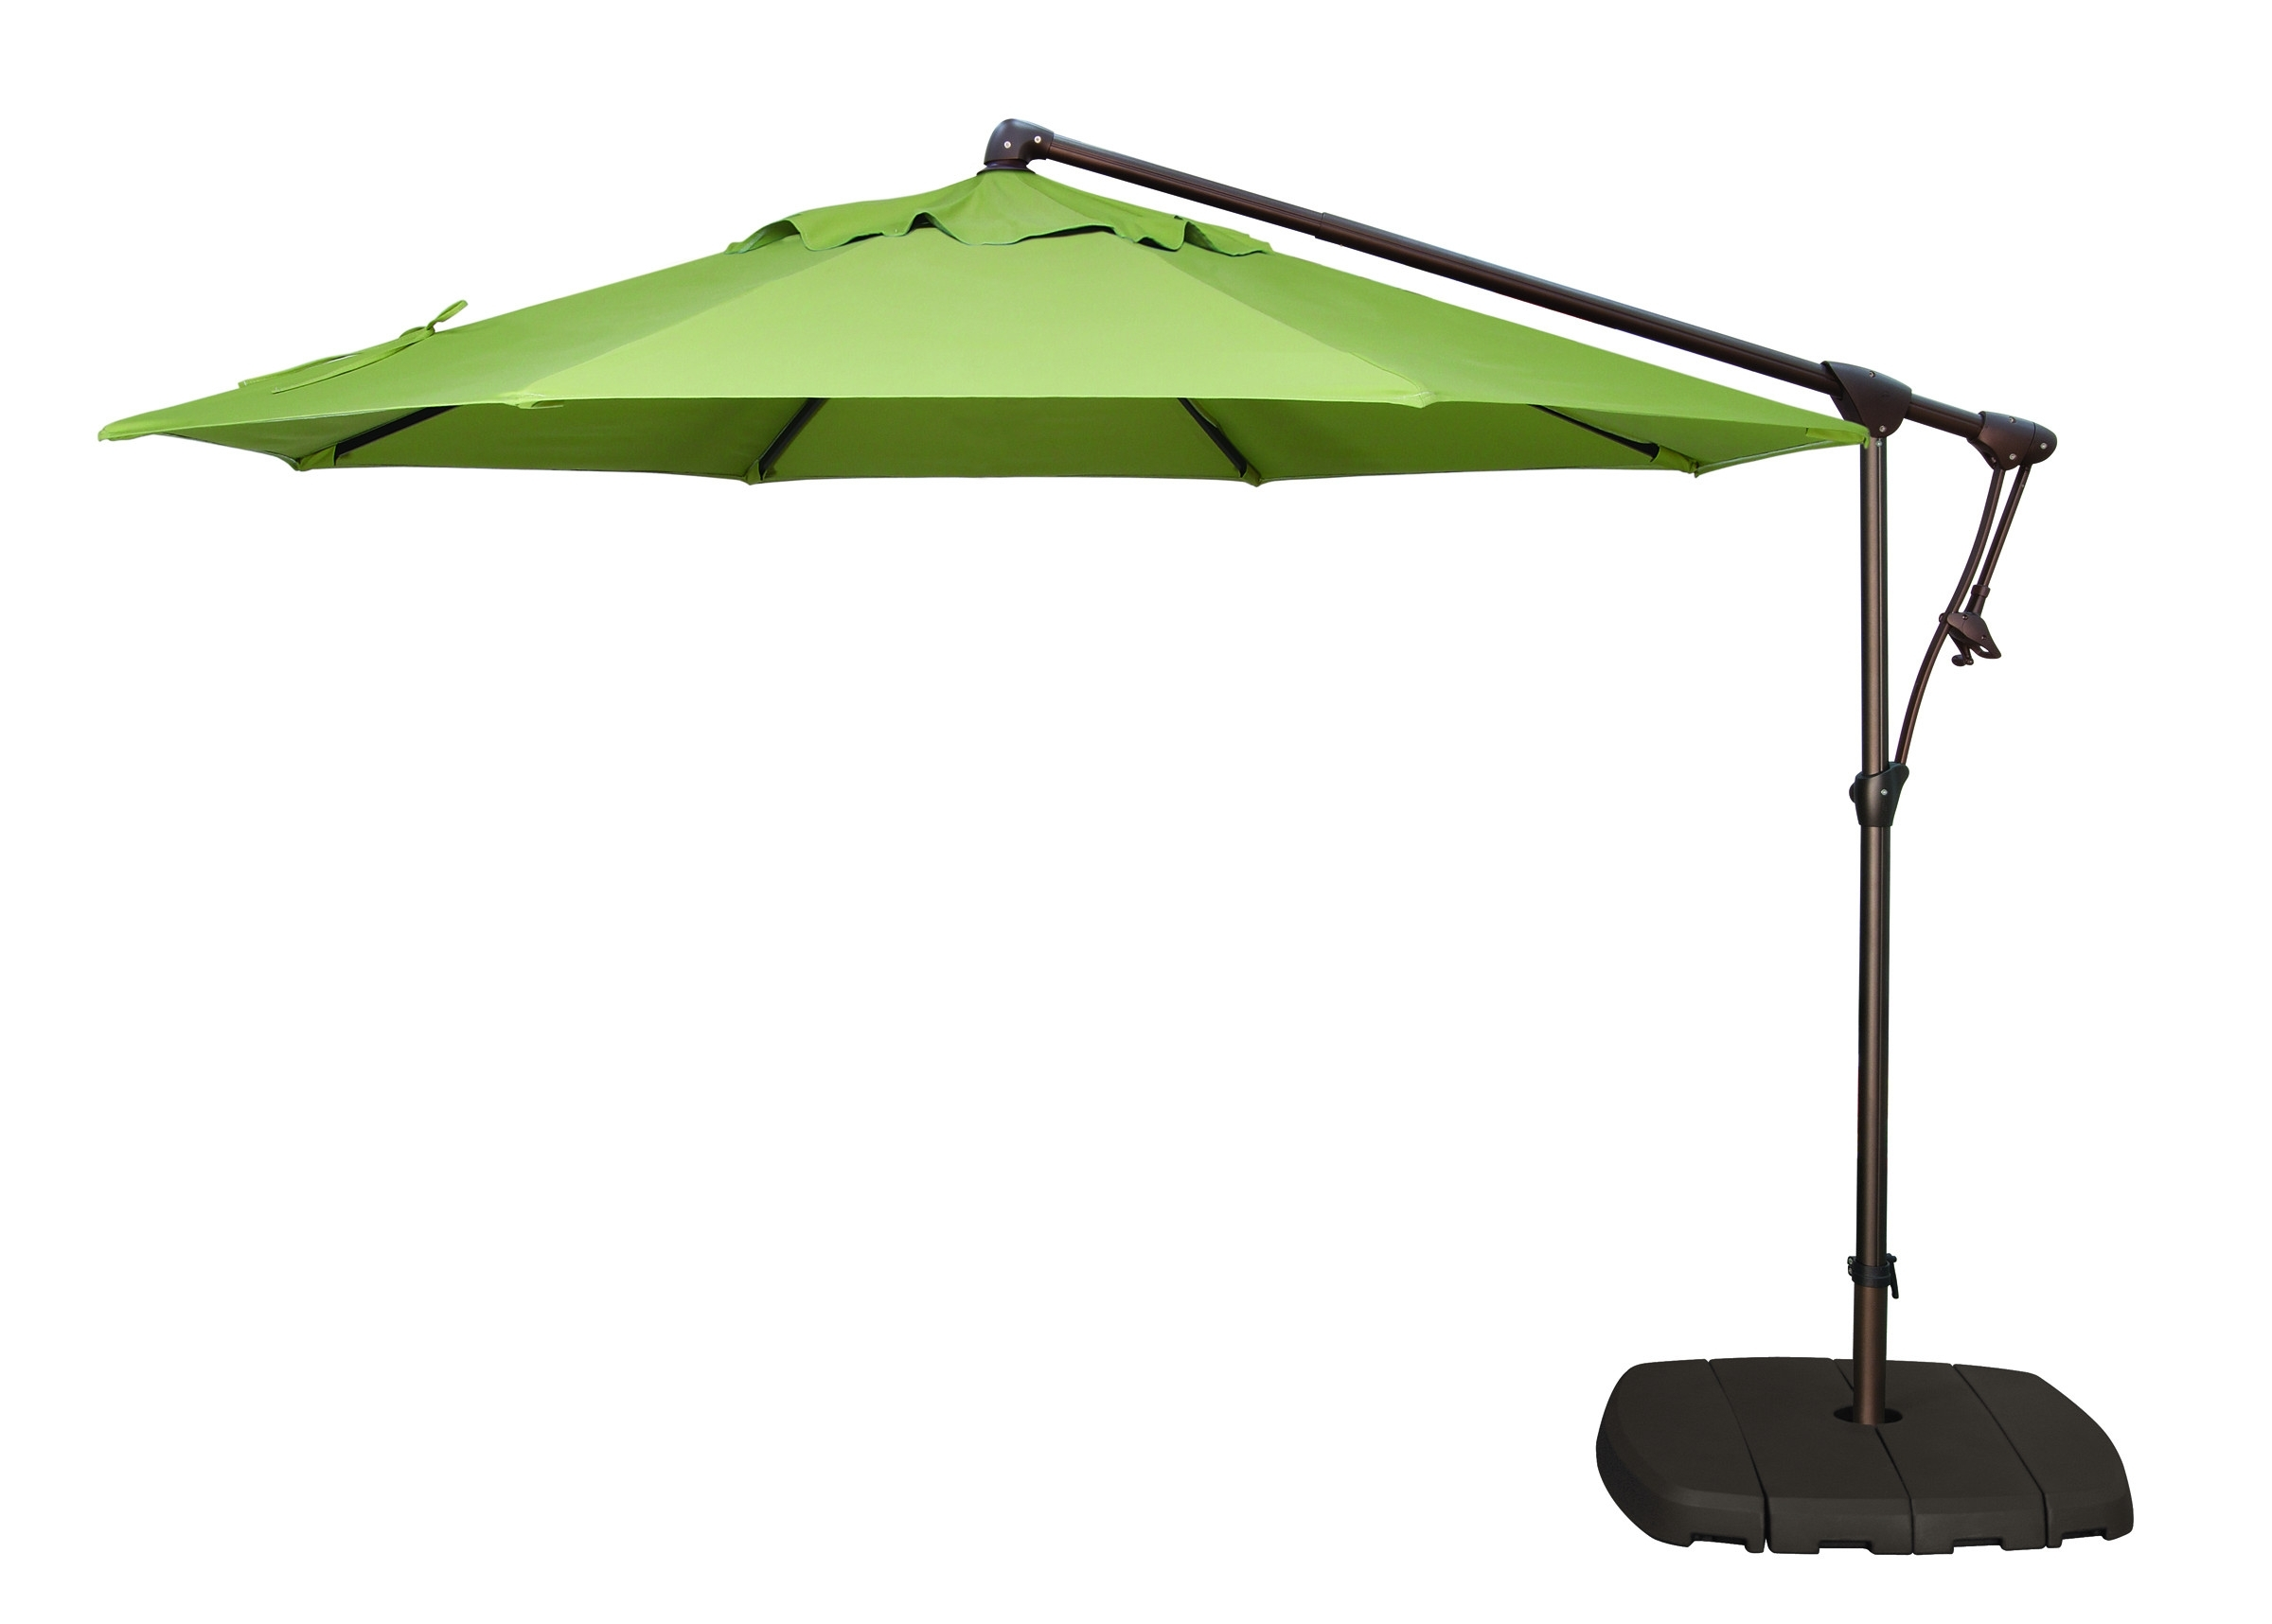 Popular Walmart Patio Umbrellas Pertaining To Walmart Patio Umbrellas Patios Outstanding Umbrella For Stunning (View 2 of 20)